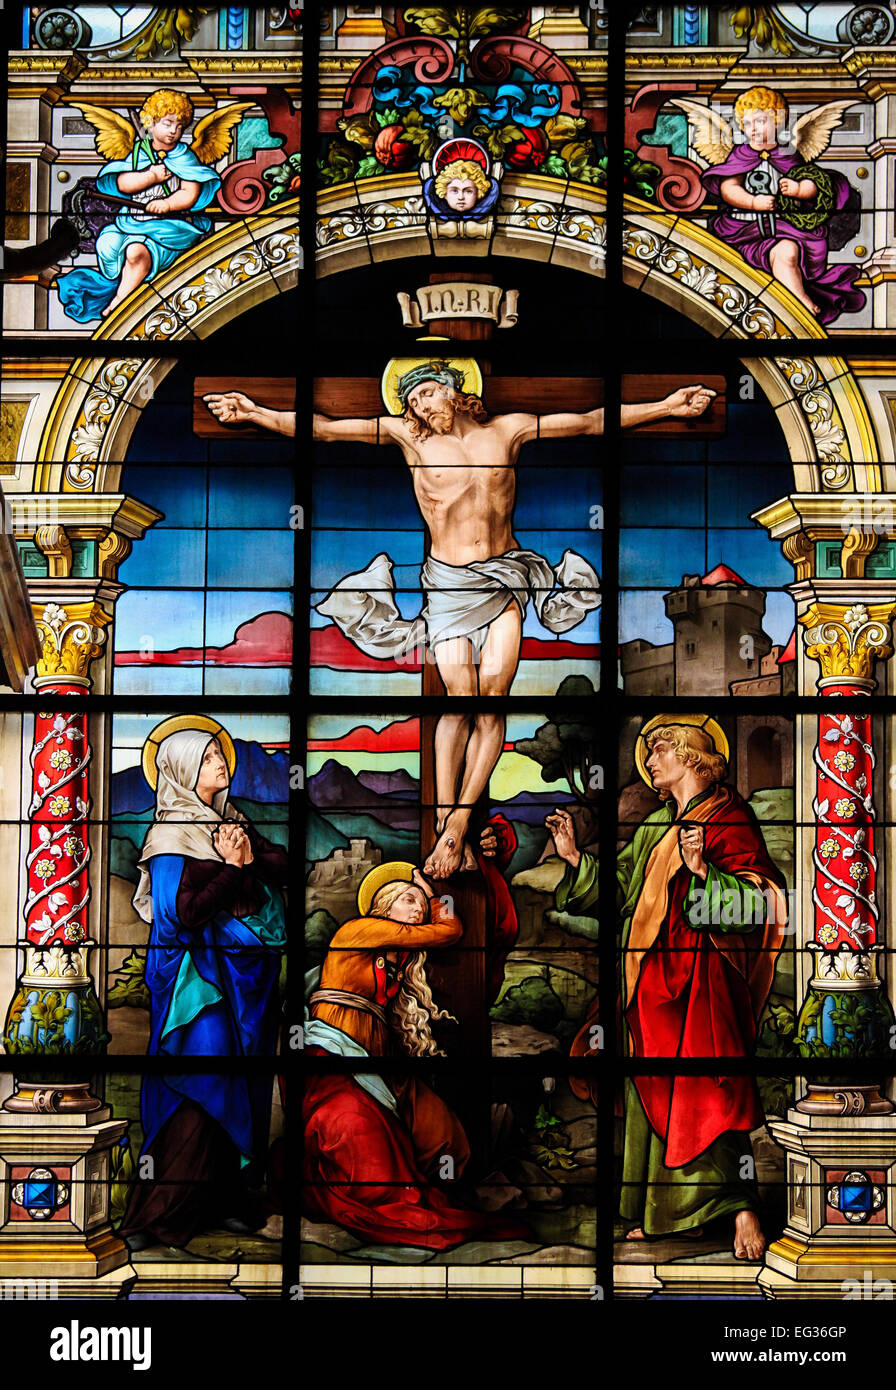 Beautiful stained glass window created by F. Zettler (1878-1911) at the German Church (St. Gertrude's church) in Stock Photo